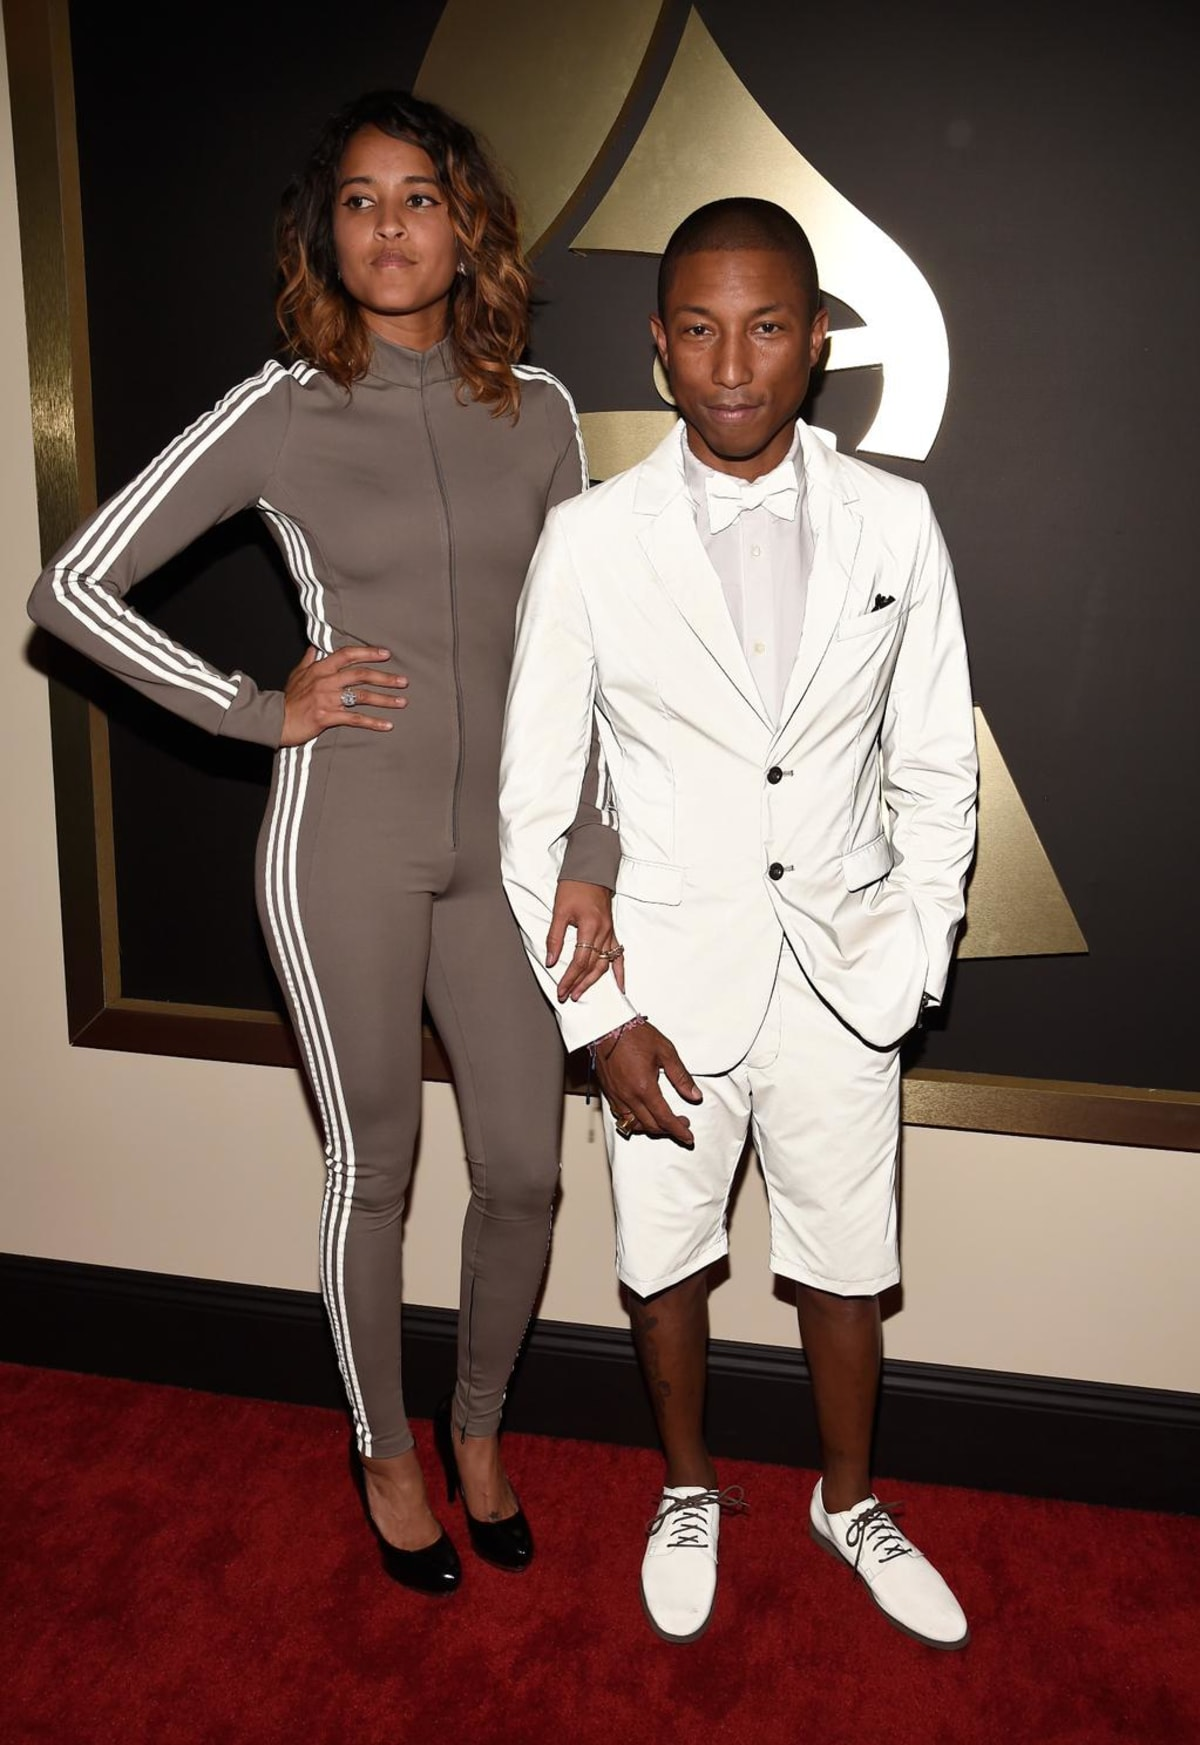 Pharrell Wore a 3M adidas Shorts Suit at the Grammys | Complex